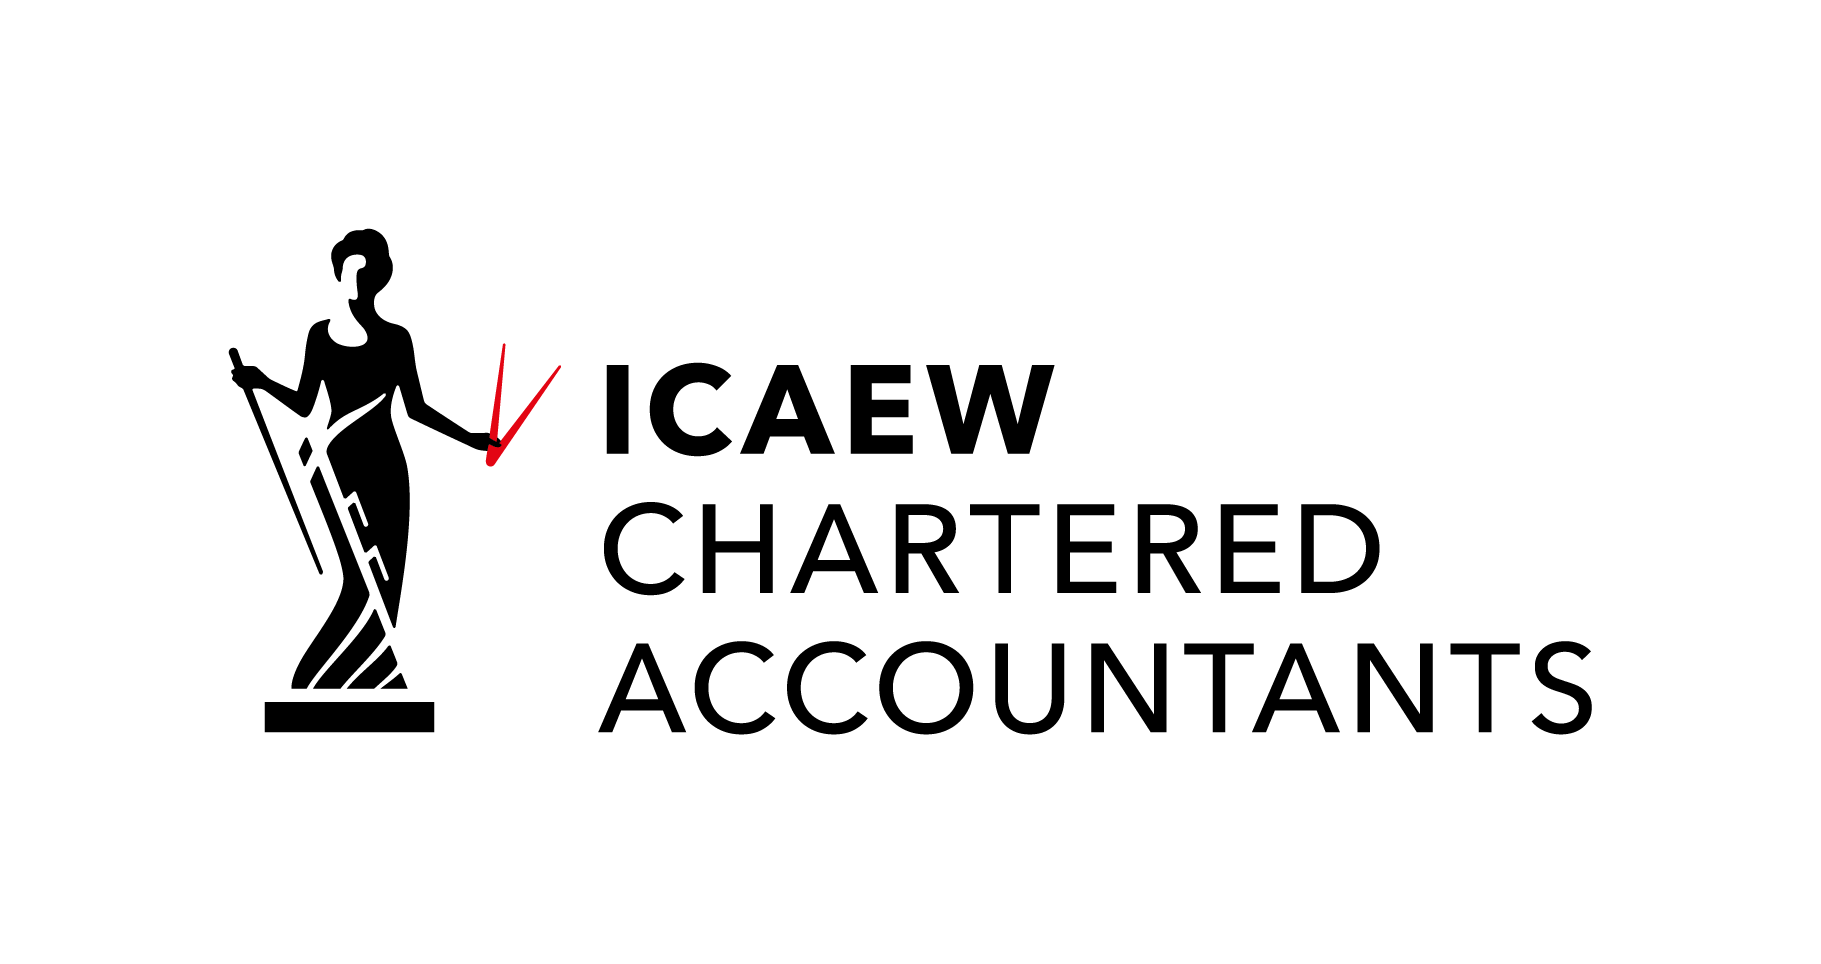 ICAEW_Chartered Accountants logo